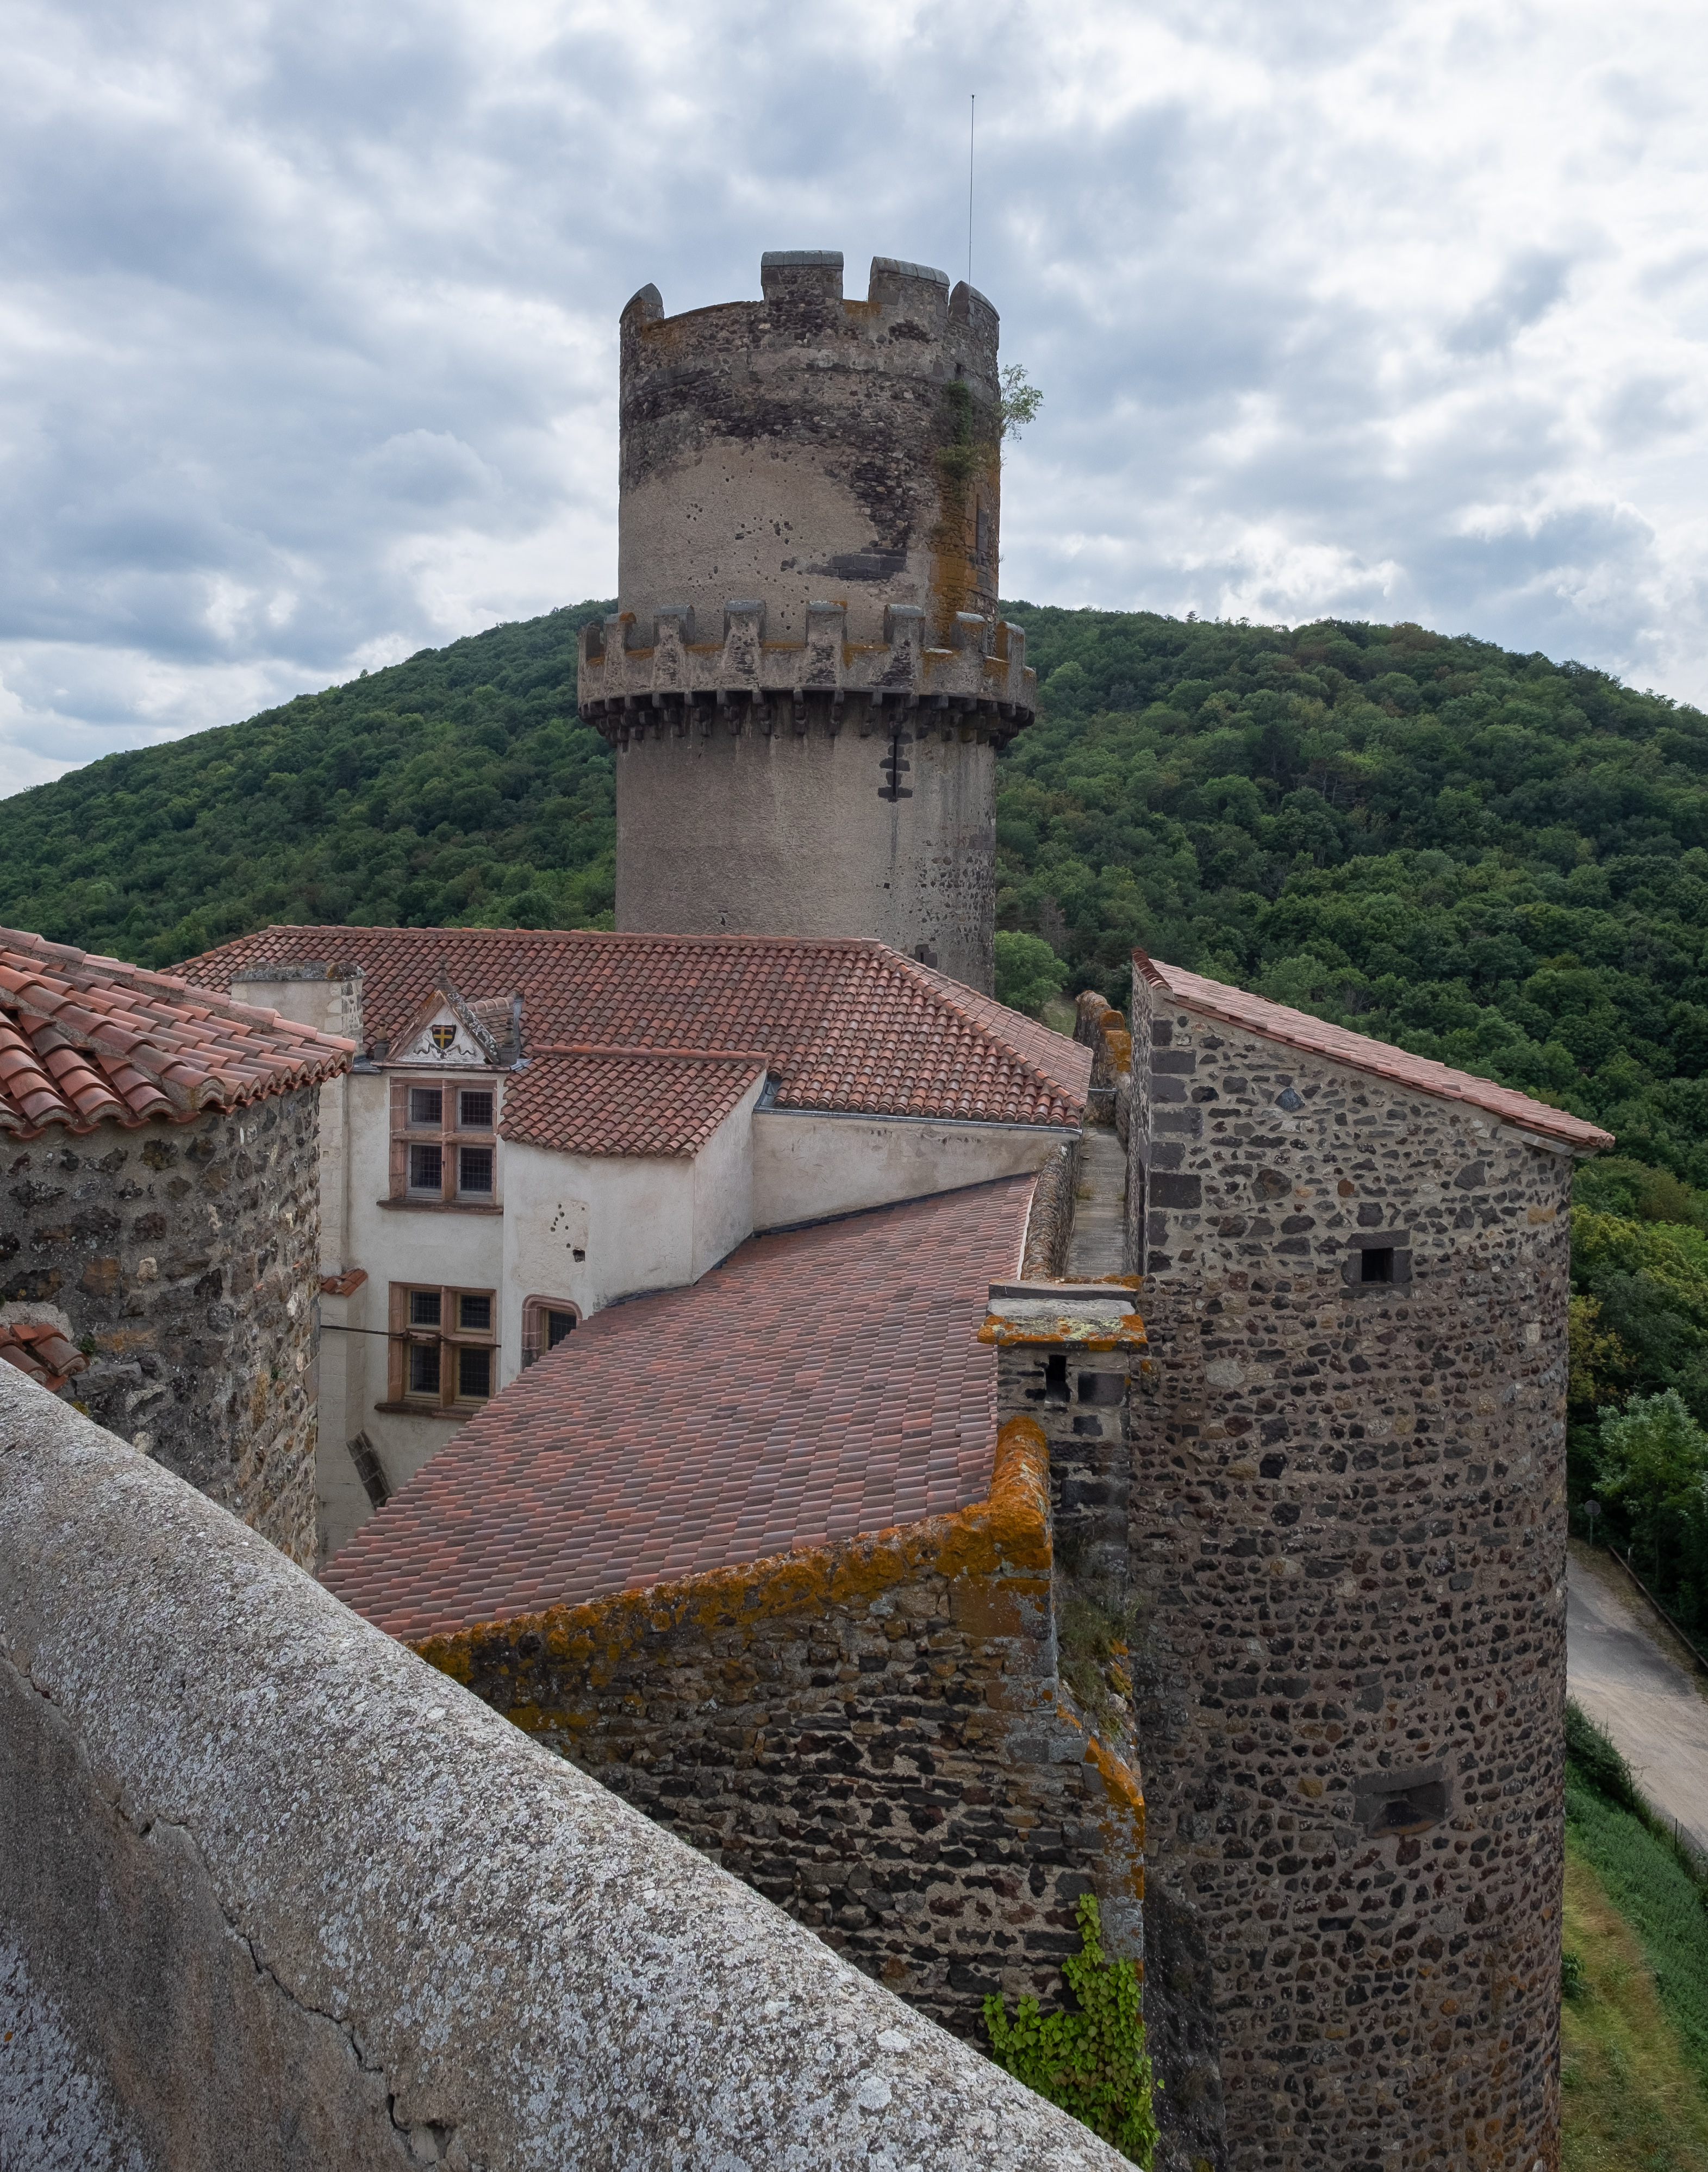 Visit the medieval castle at Tournoel in the deep heart of France